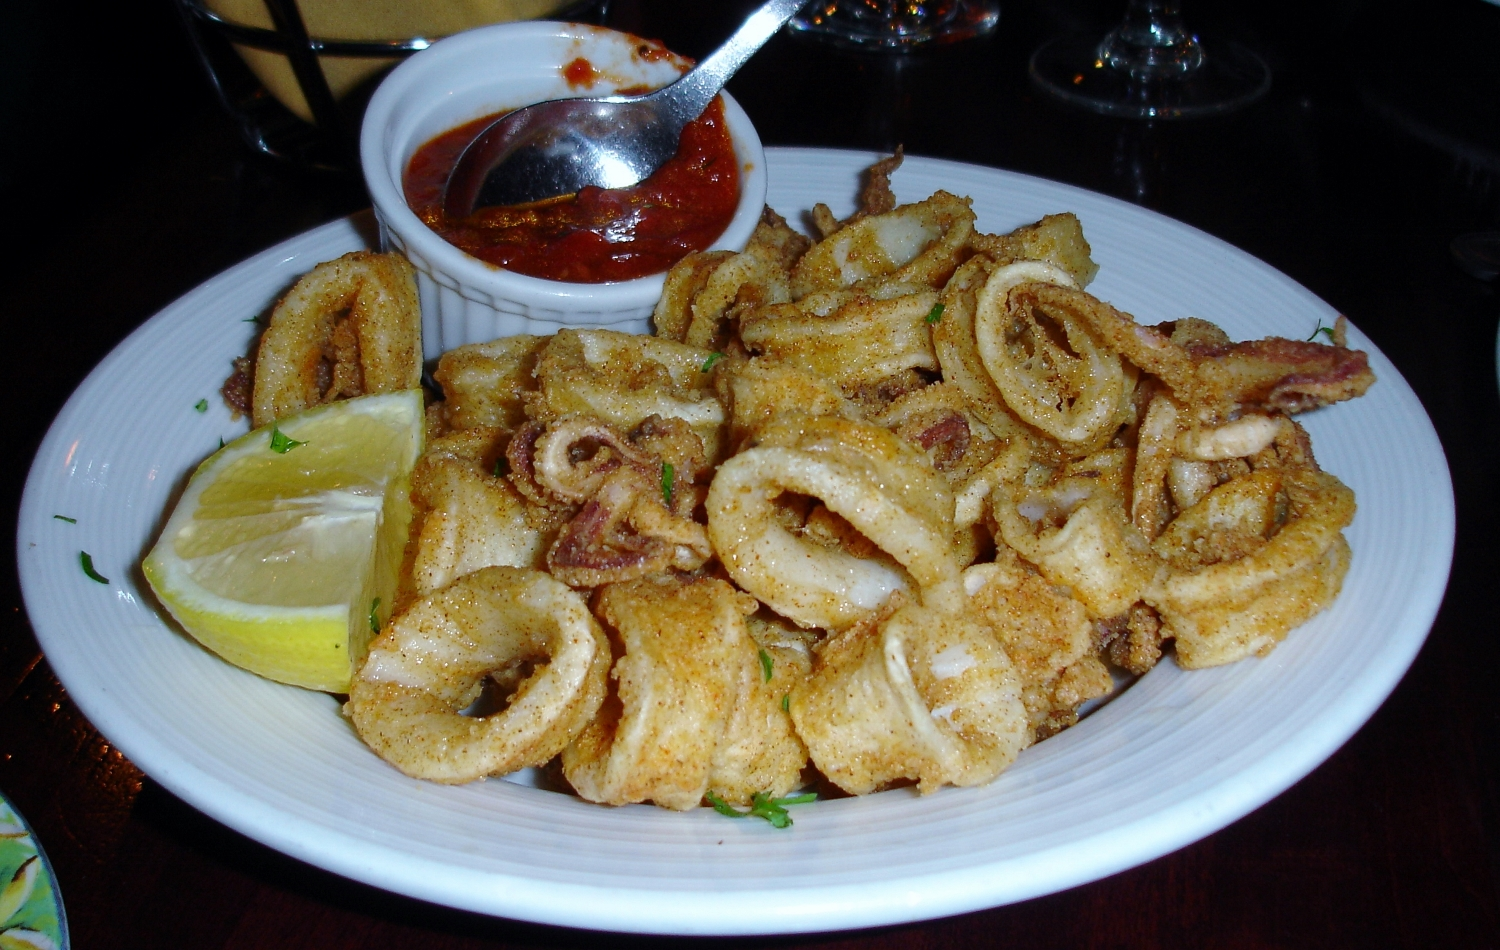 Fried calamari was the first less than stellar food we've had at Villa Barone. The squid was utterly flavorless. This is not unusual in restaurants, but the good stuff, rare as it may be, has a pleasant taste of the sea.